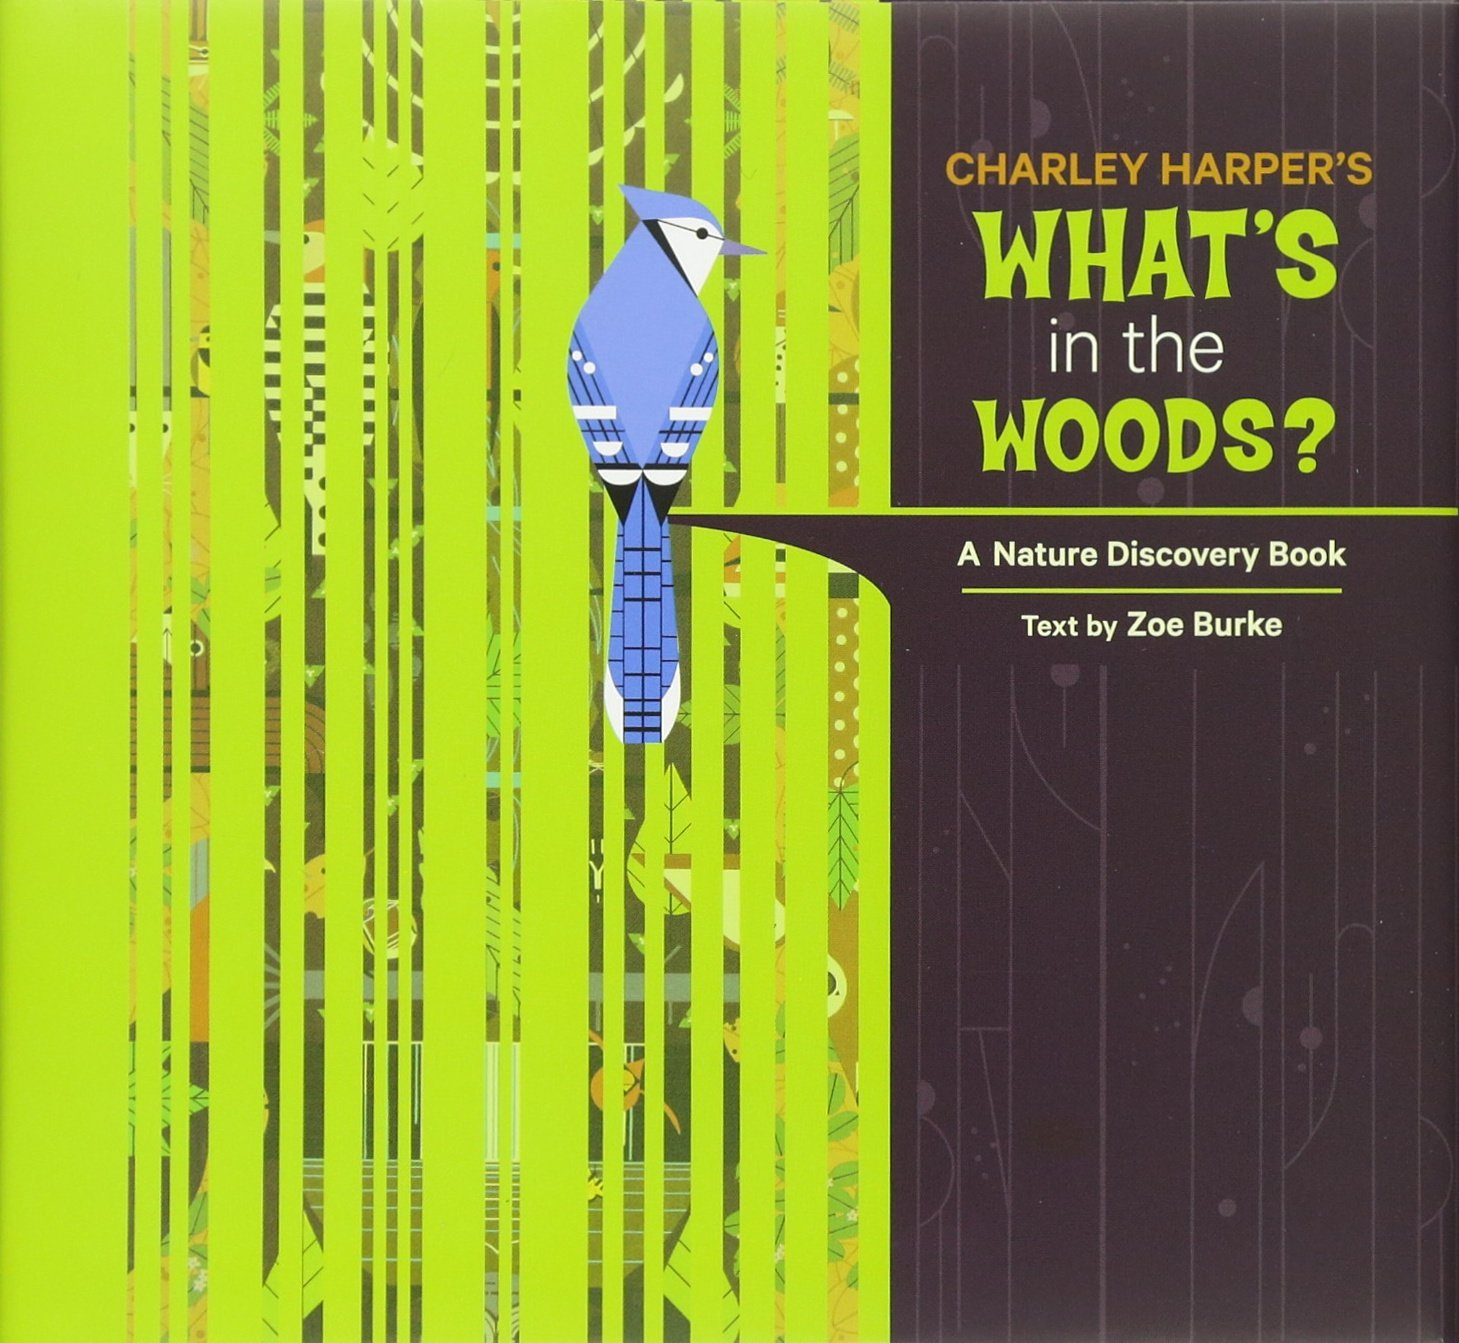 Charley Harper's What's in the Woods?: A Nature Discovery Book (Nature Discovery Books) pdf